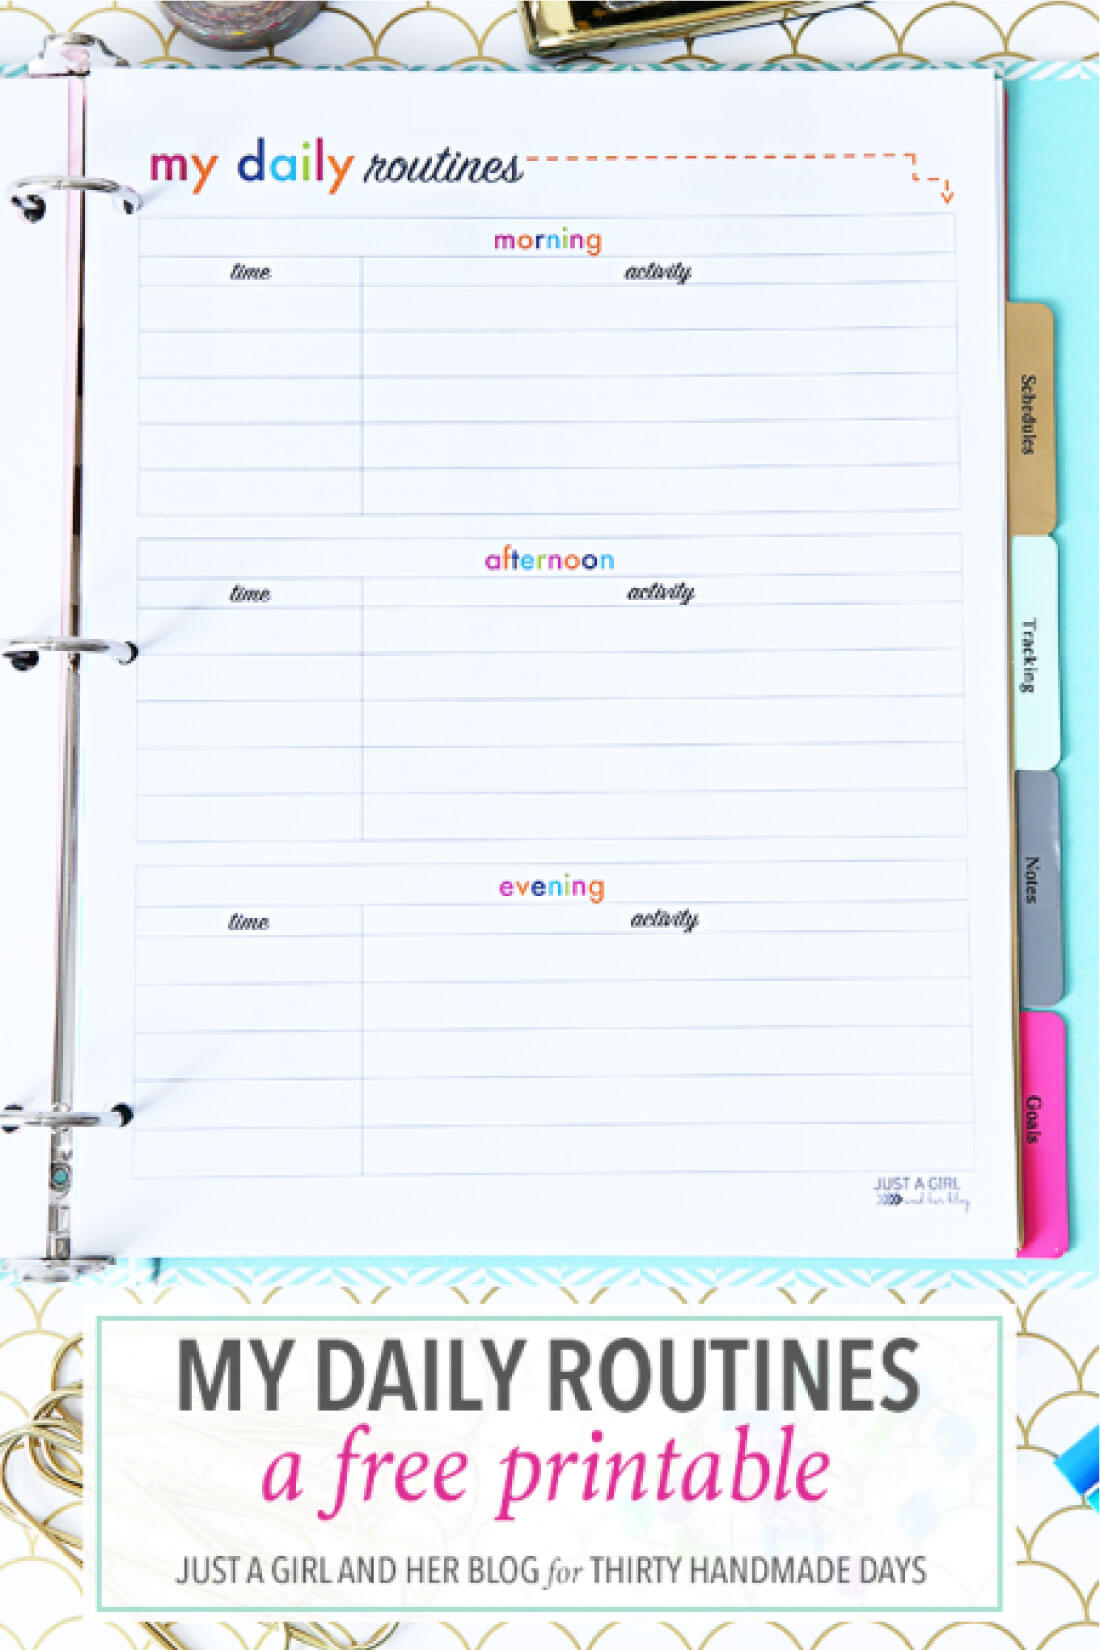 My Daily Routine Printable